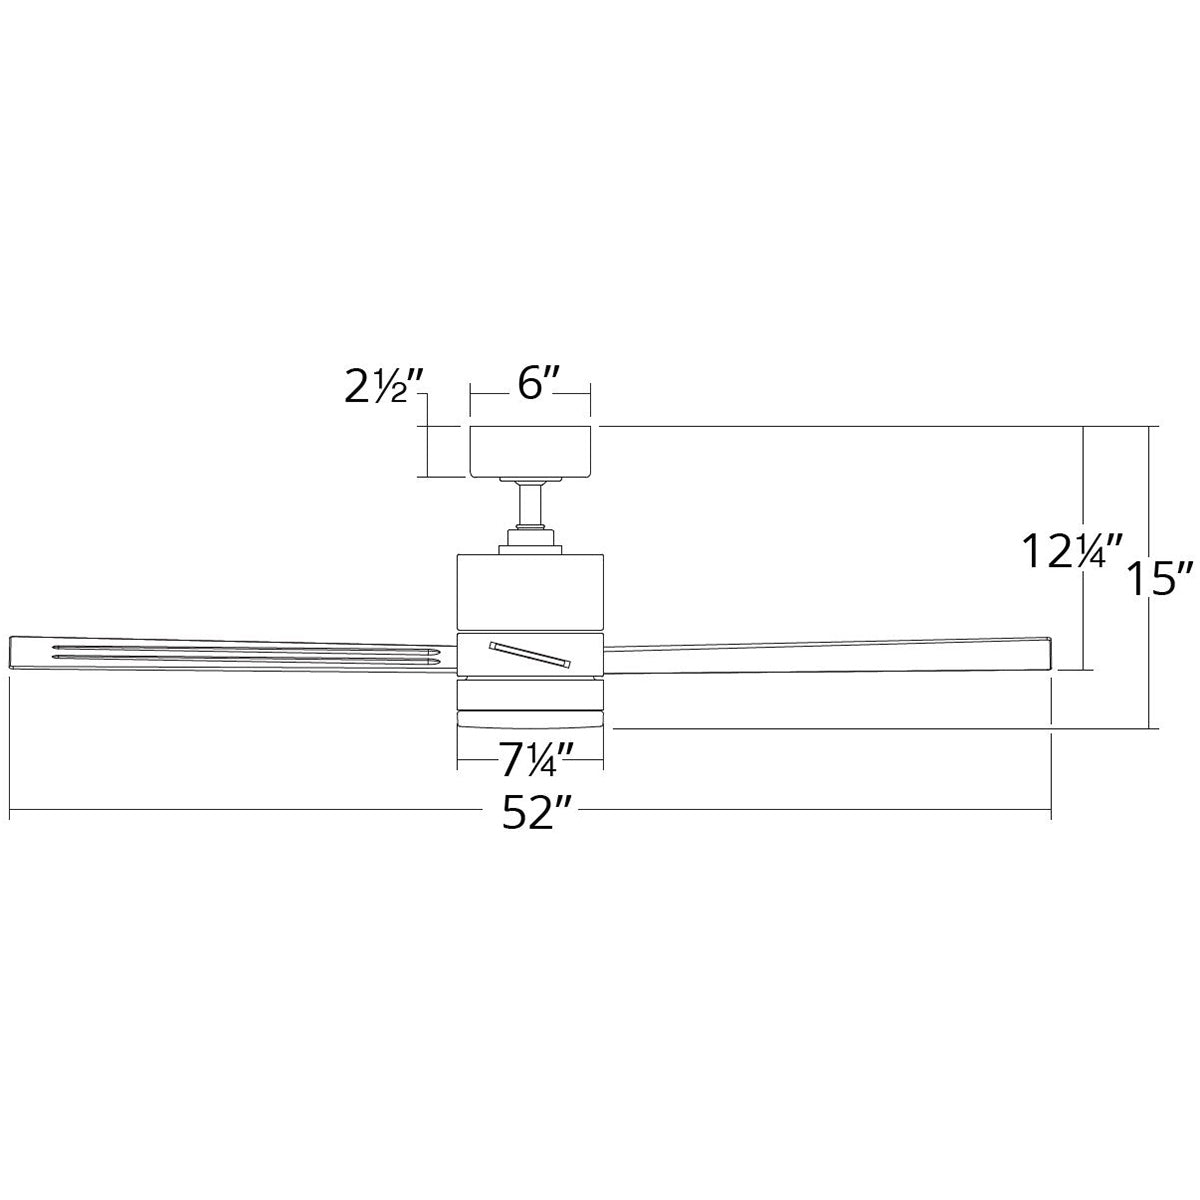 Axis 52 Ceiling Fan Specifications